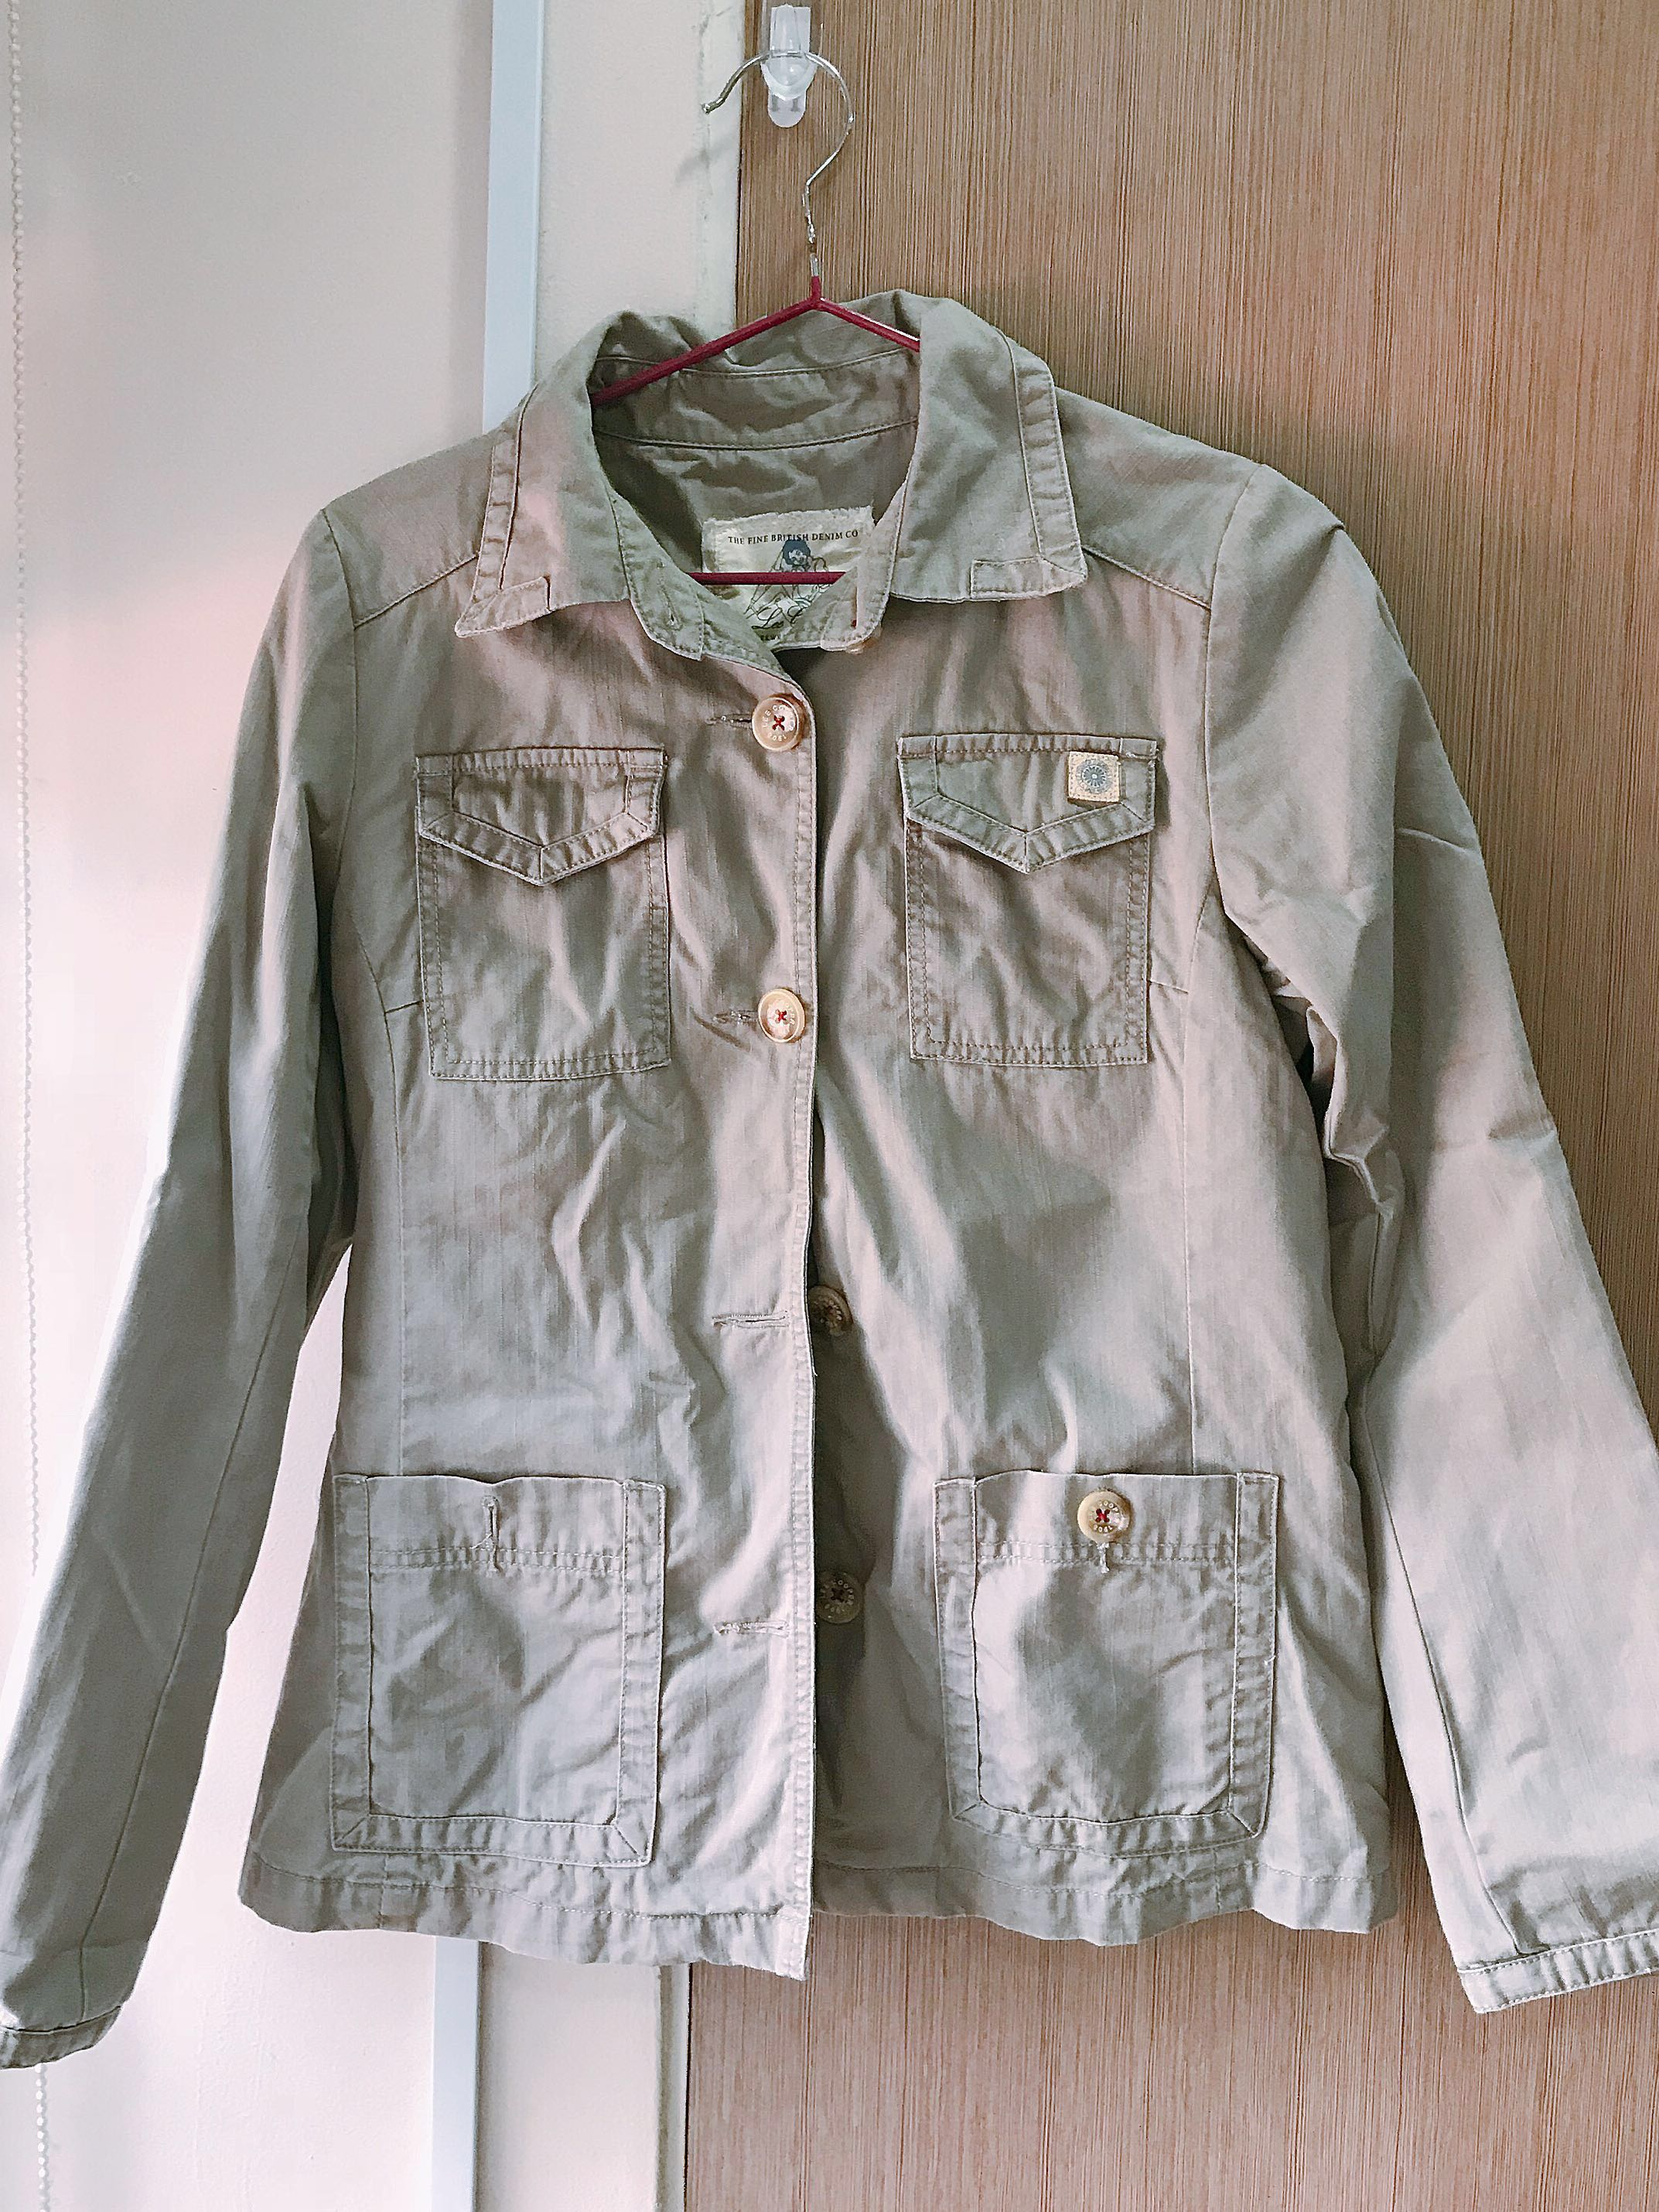 Lee cooper 100%cotton jacket trench like